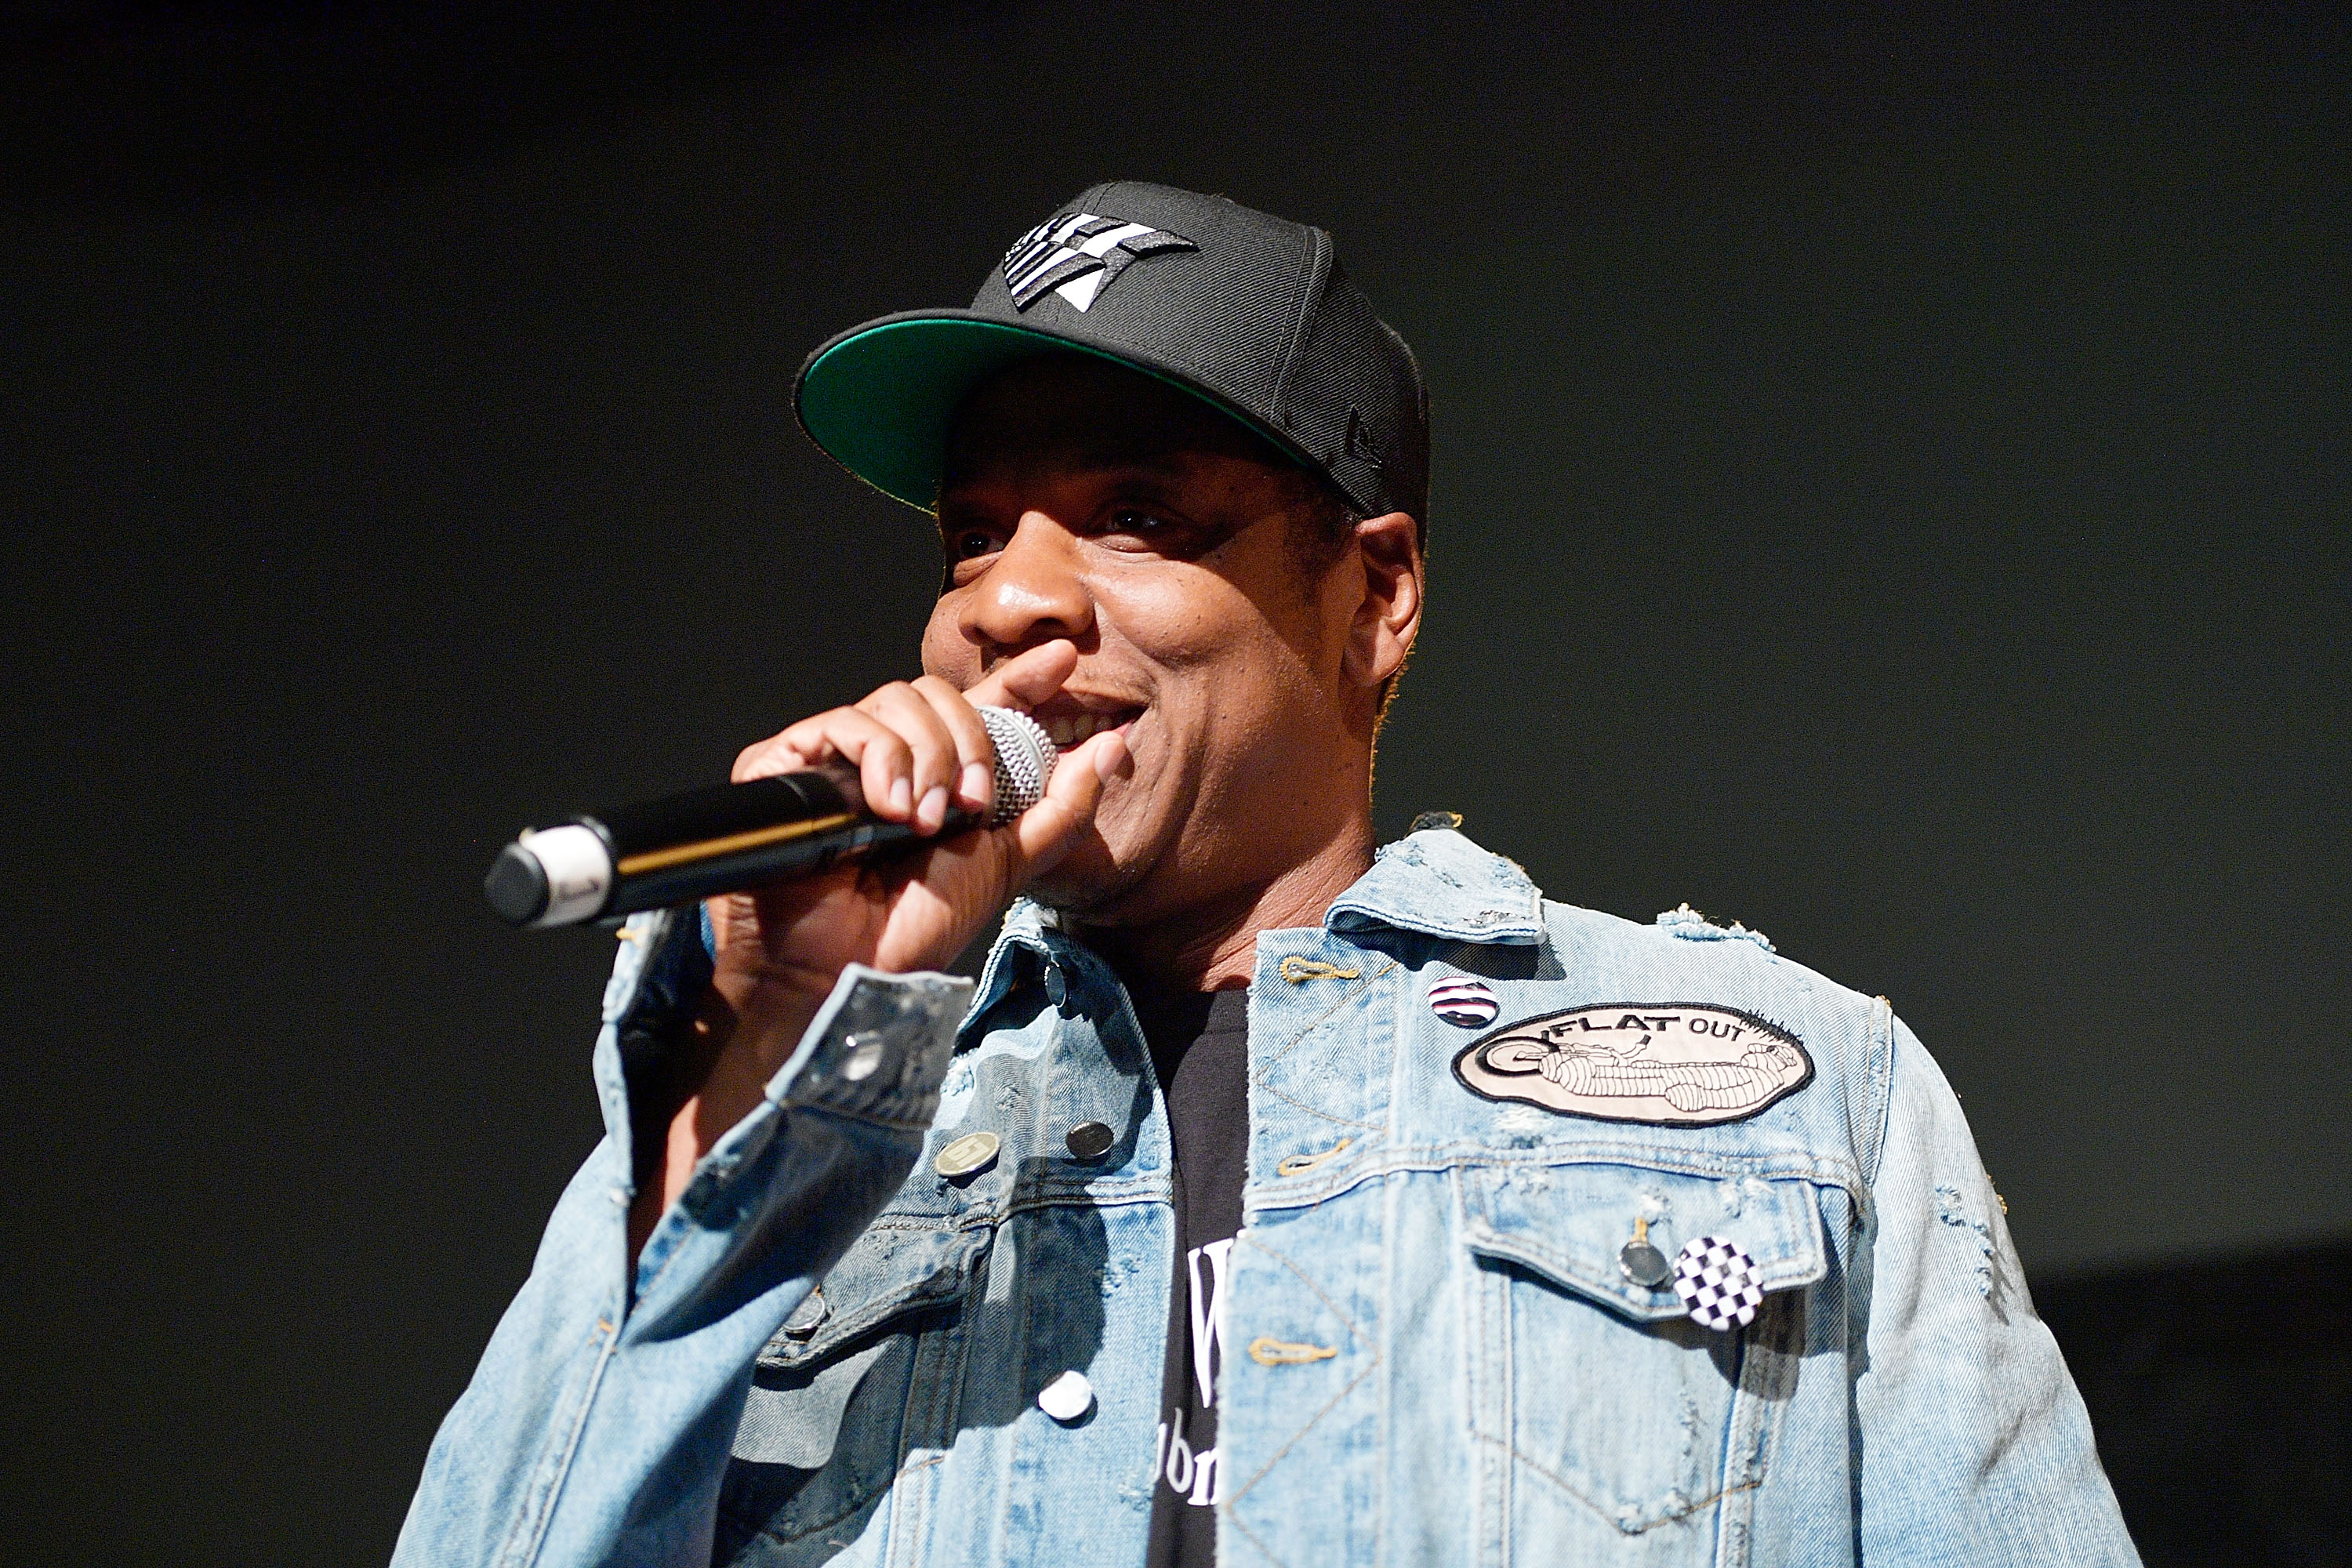 Jay-Z Introduces Vic Mensa At Mack Sennett Studios